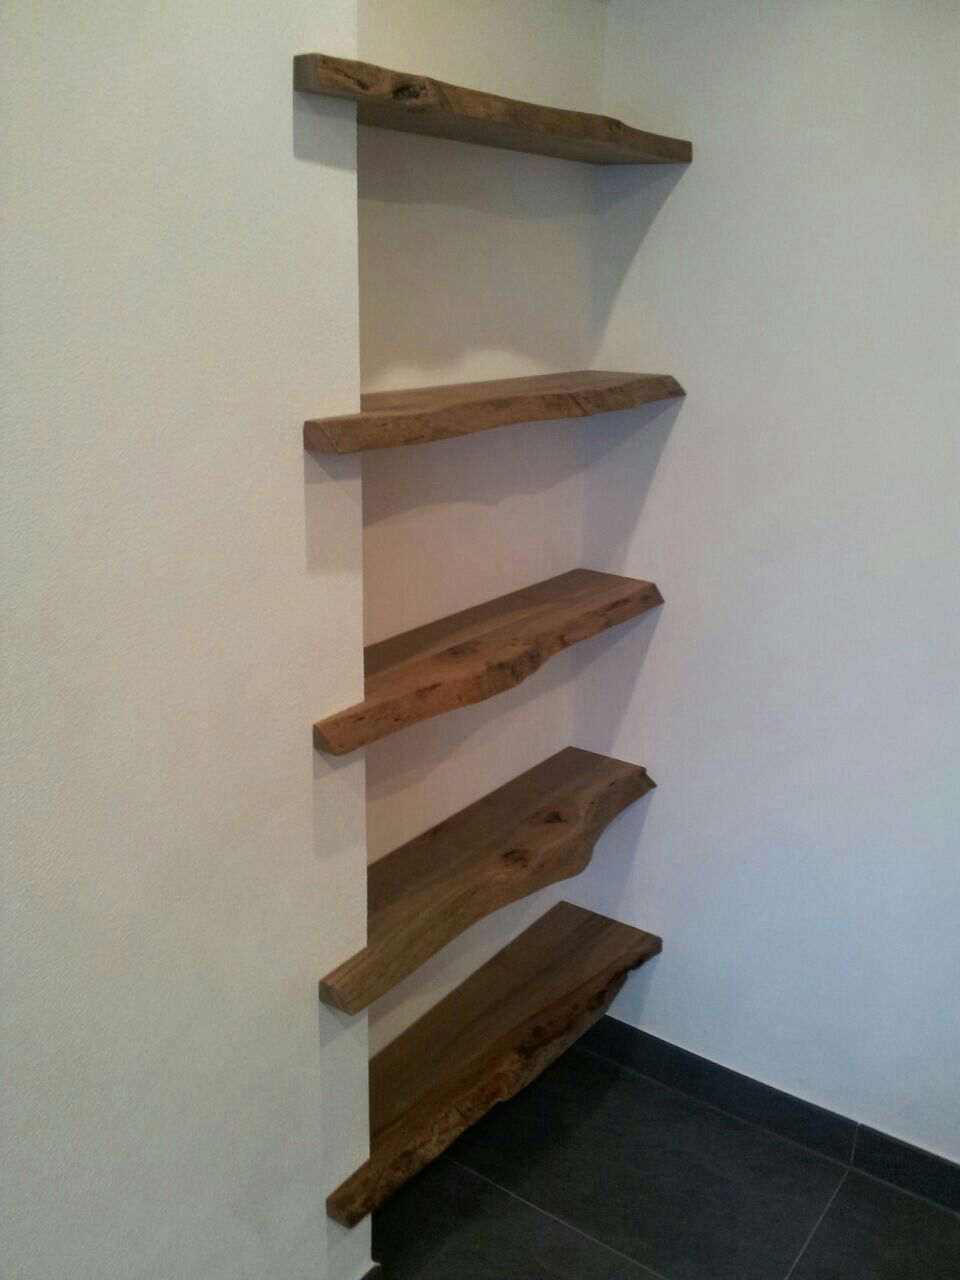 Pin by fgsd on Furniture | Wood shelves, Diy home decor ...